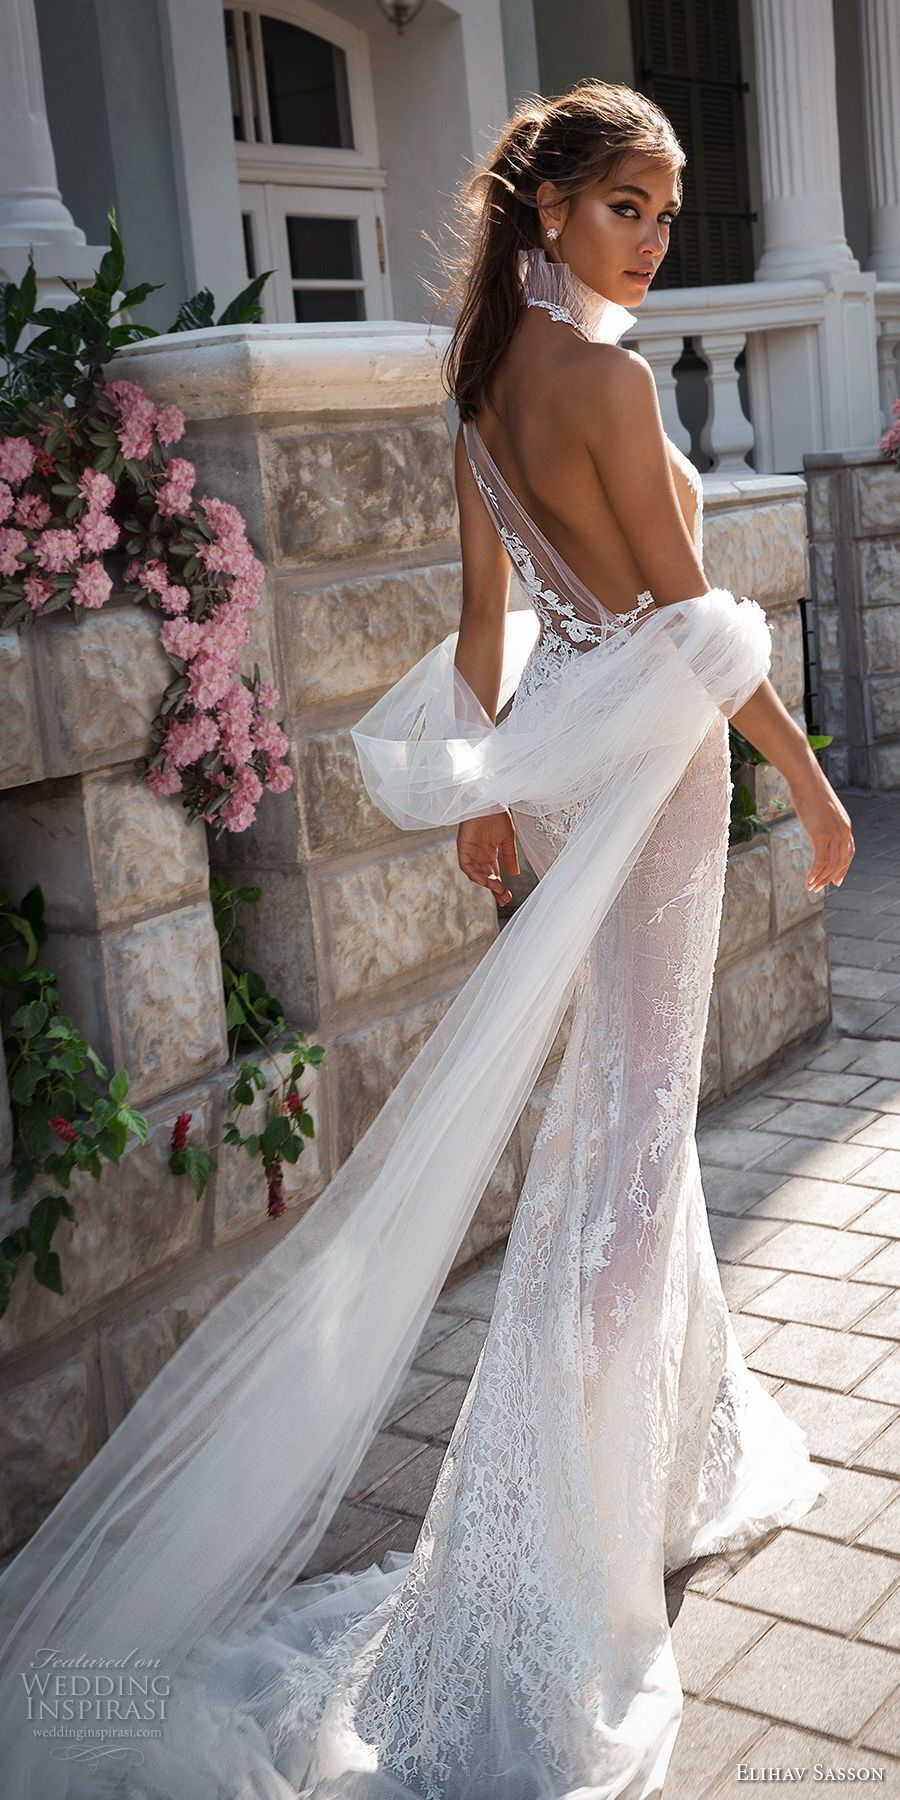 Short dress with an open back - for bold and extravagant girls